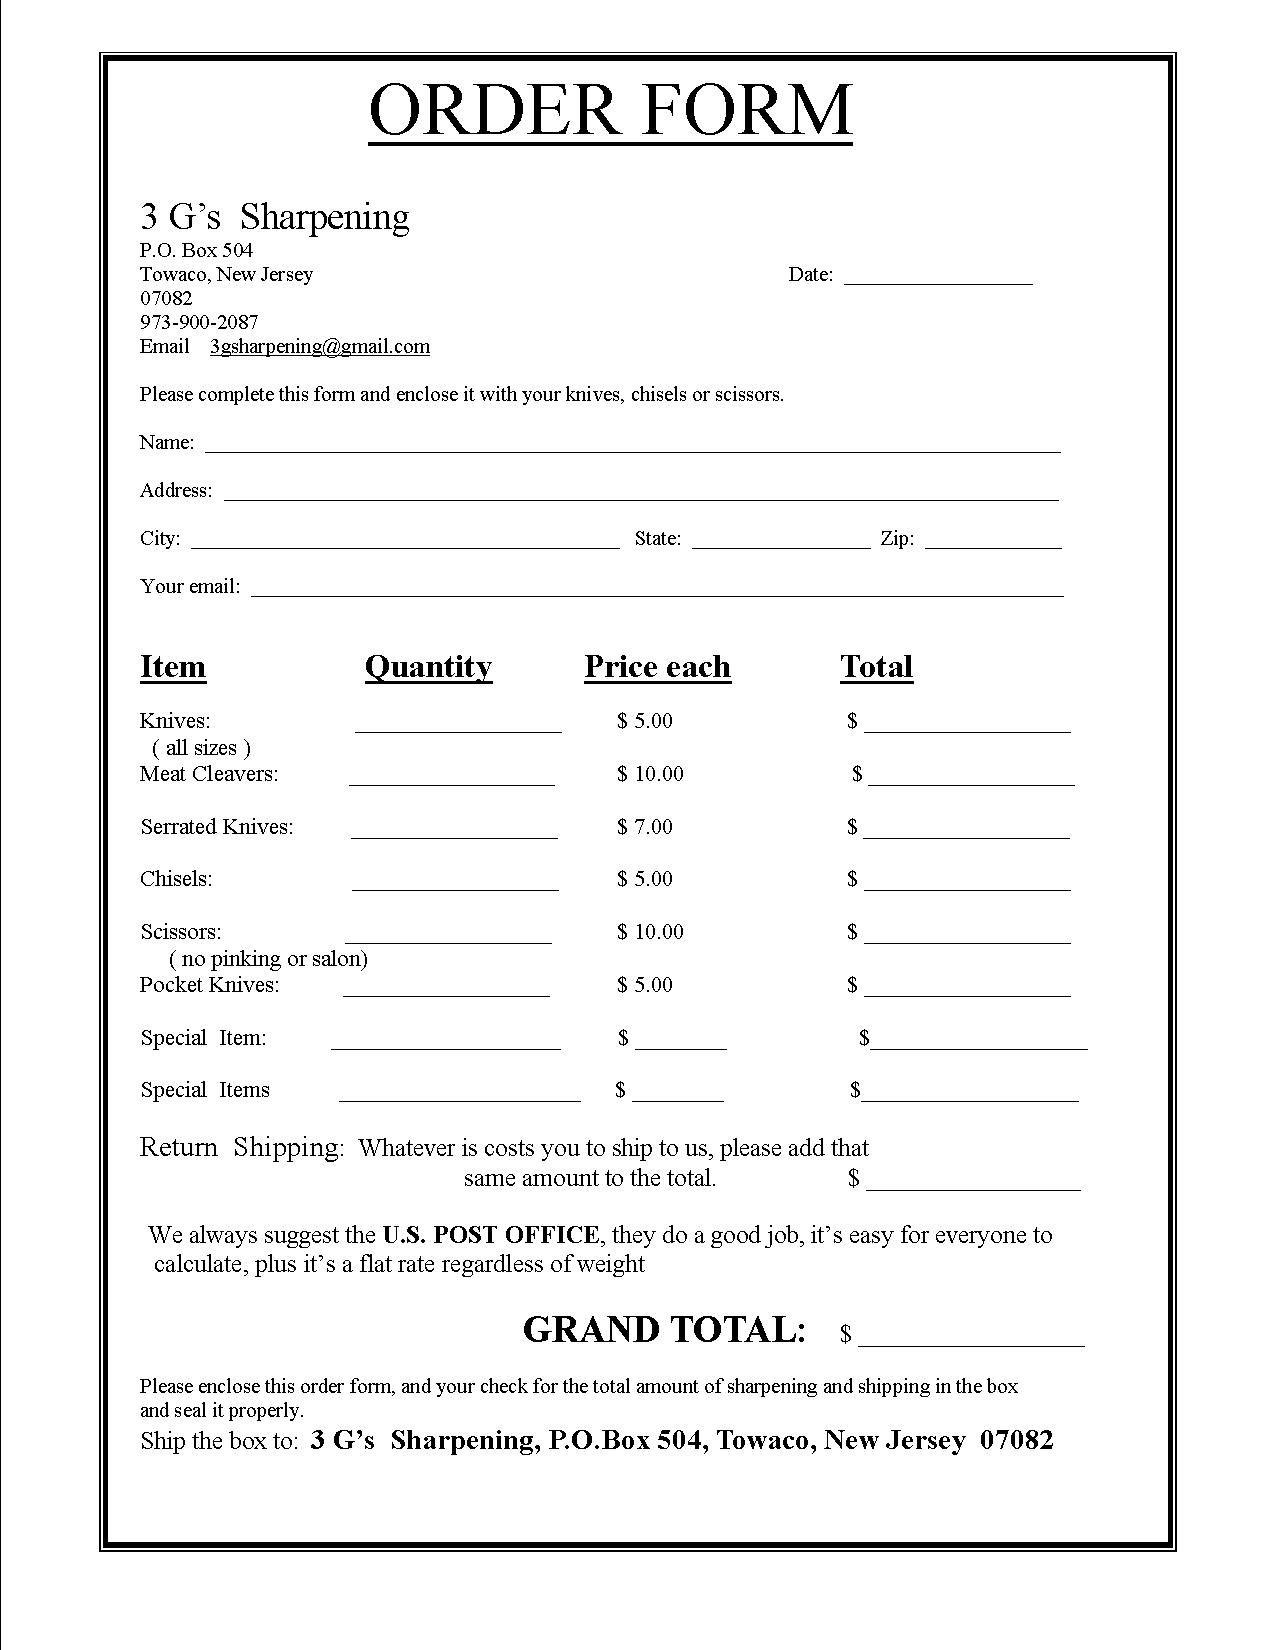 Order Form Gallery